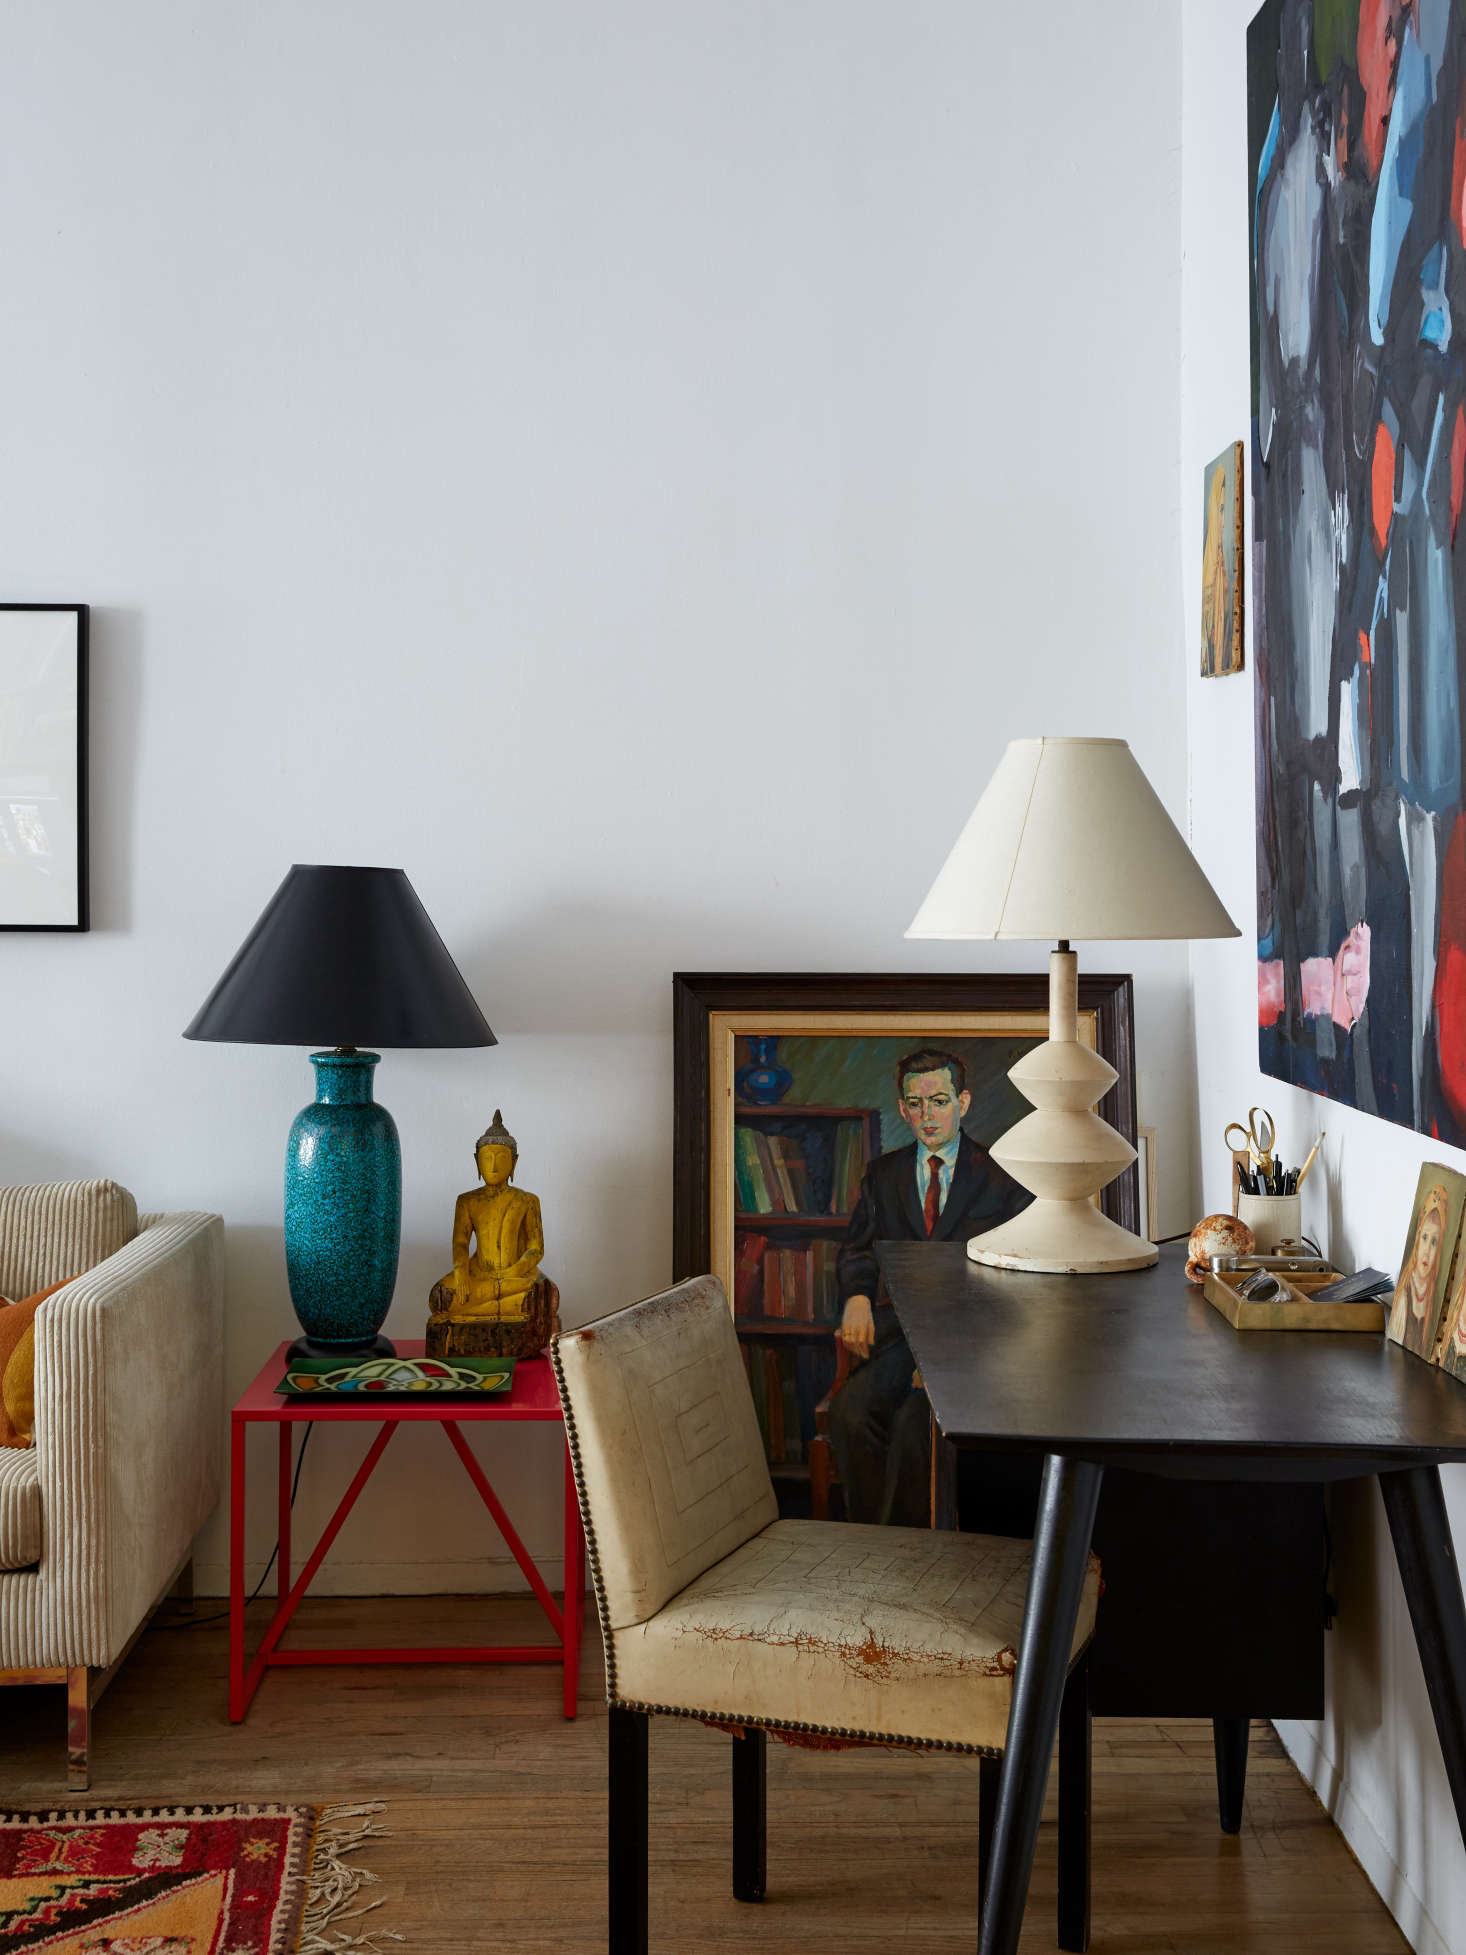 Living with art and sculptural lamps in a small rental apartment